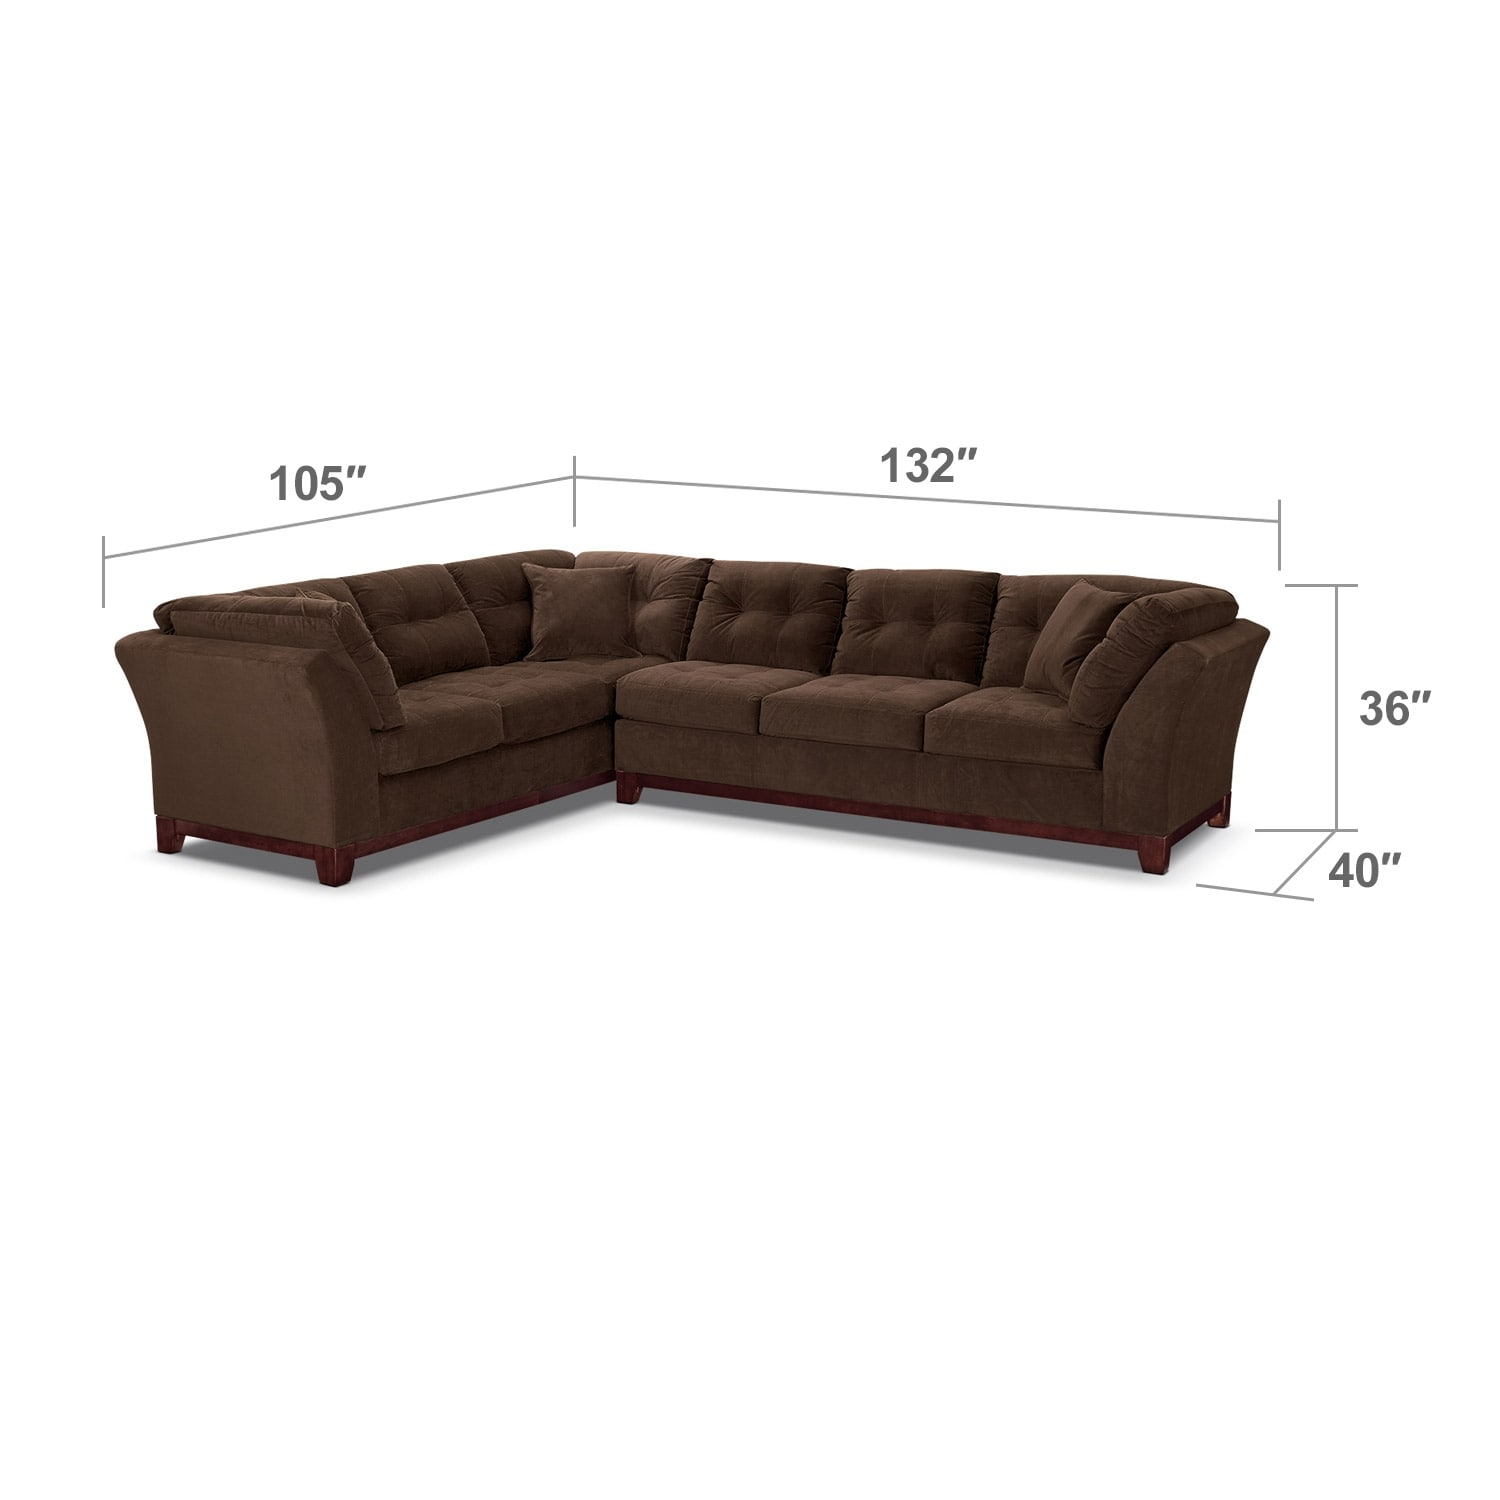 Living Room Furniture - Solace Chocolate II 2 Pc. Sectional